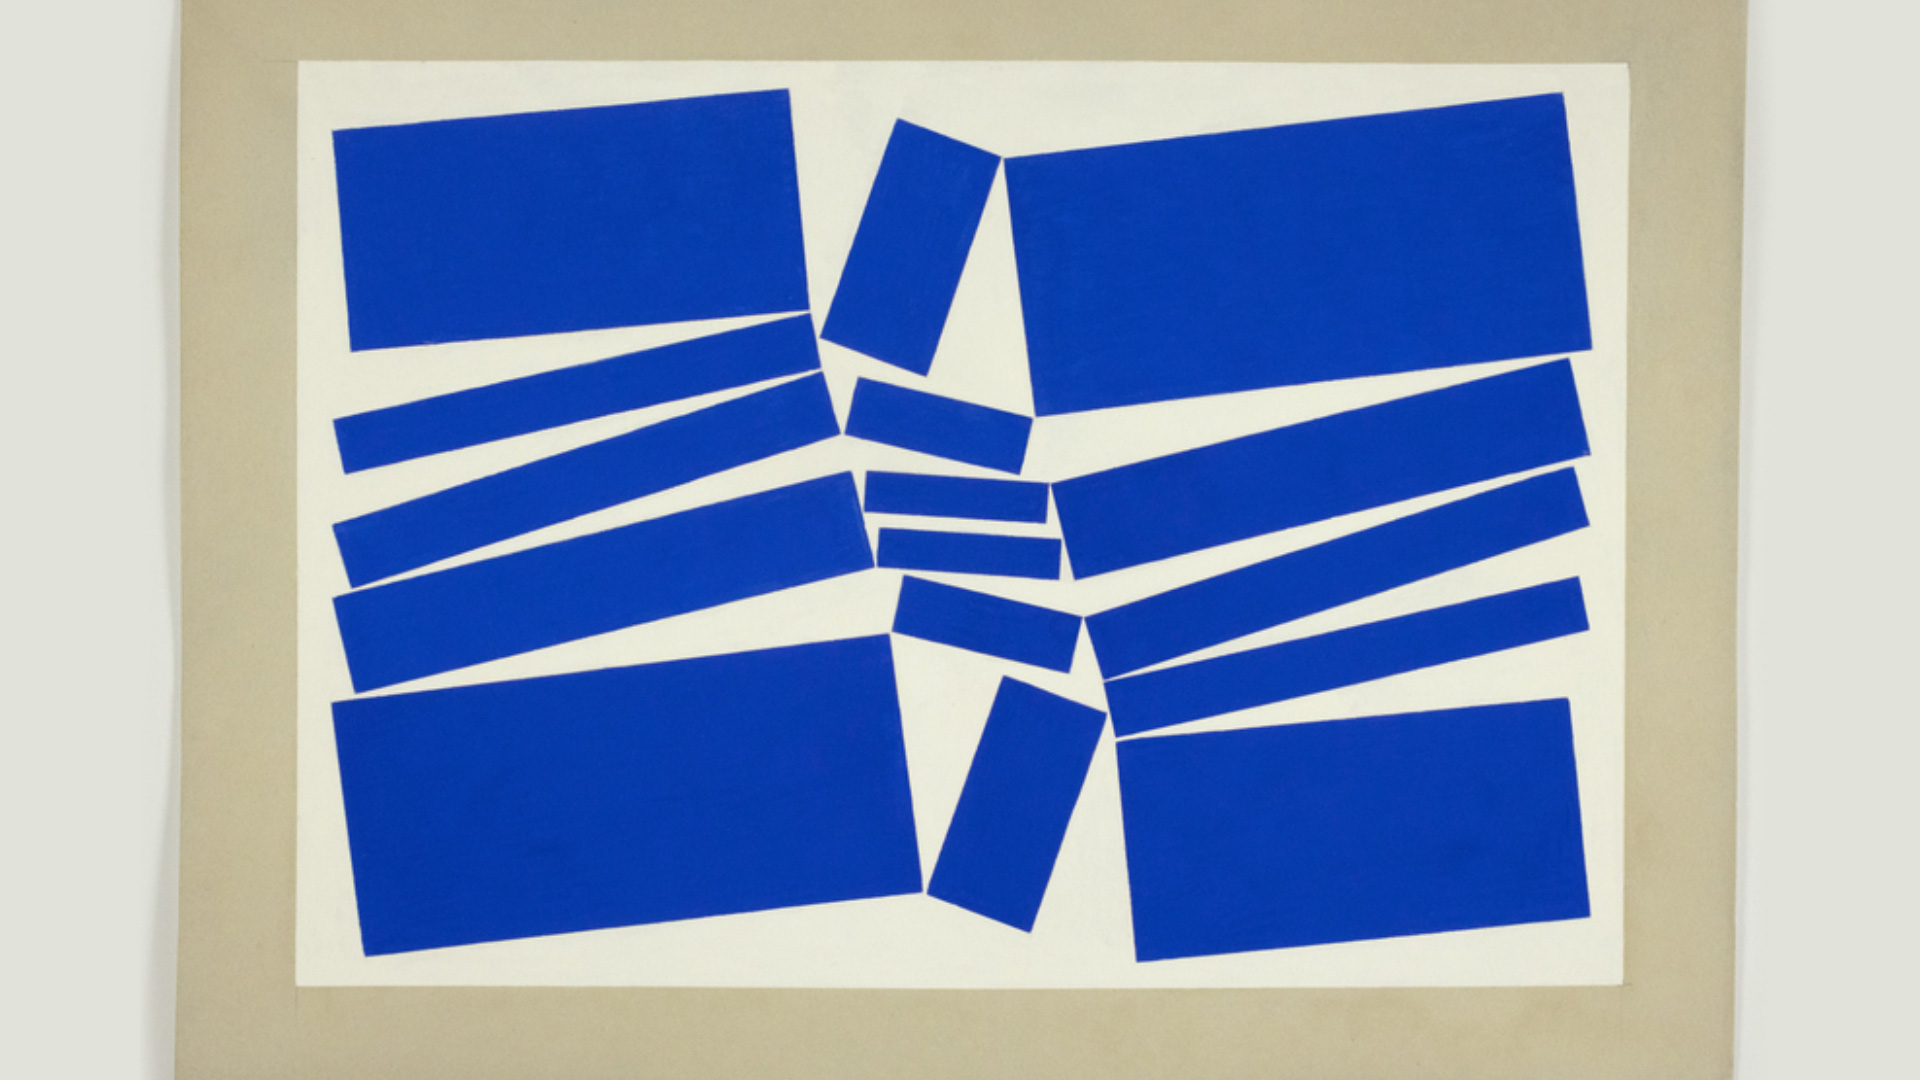 Hélio Oiticica's Untitled, 1958 in gouache on cardboard | Lisson Gallery | STIRworld